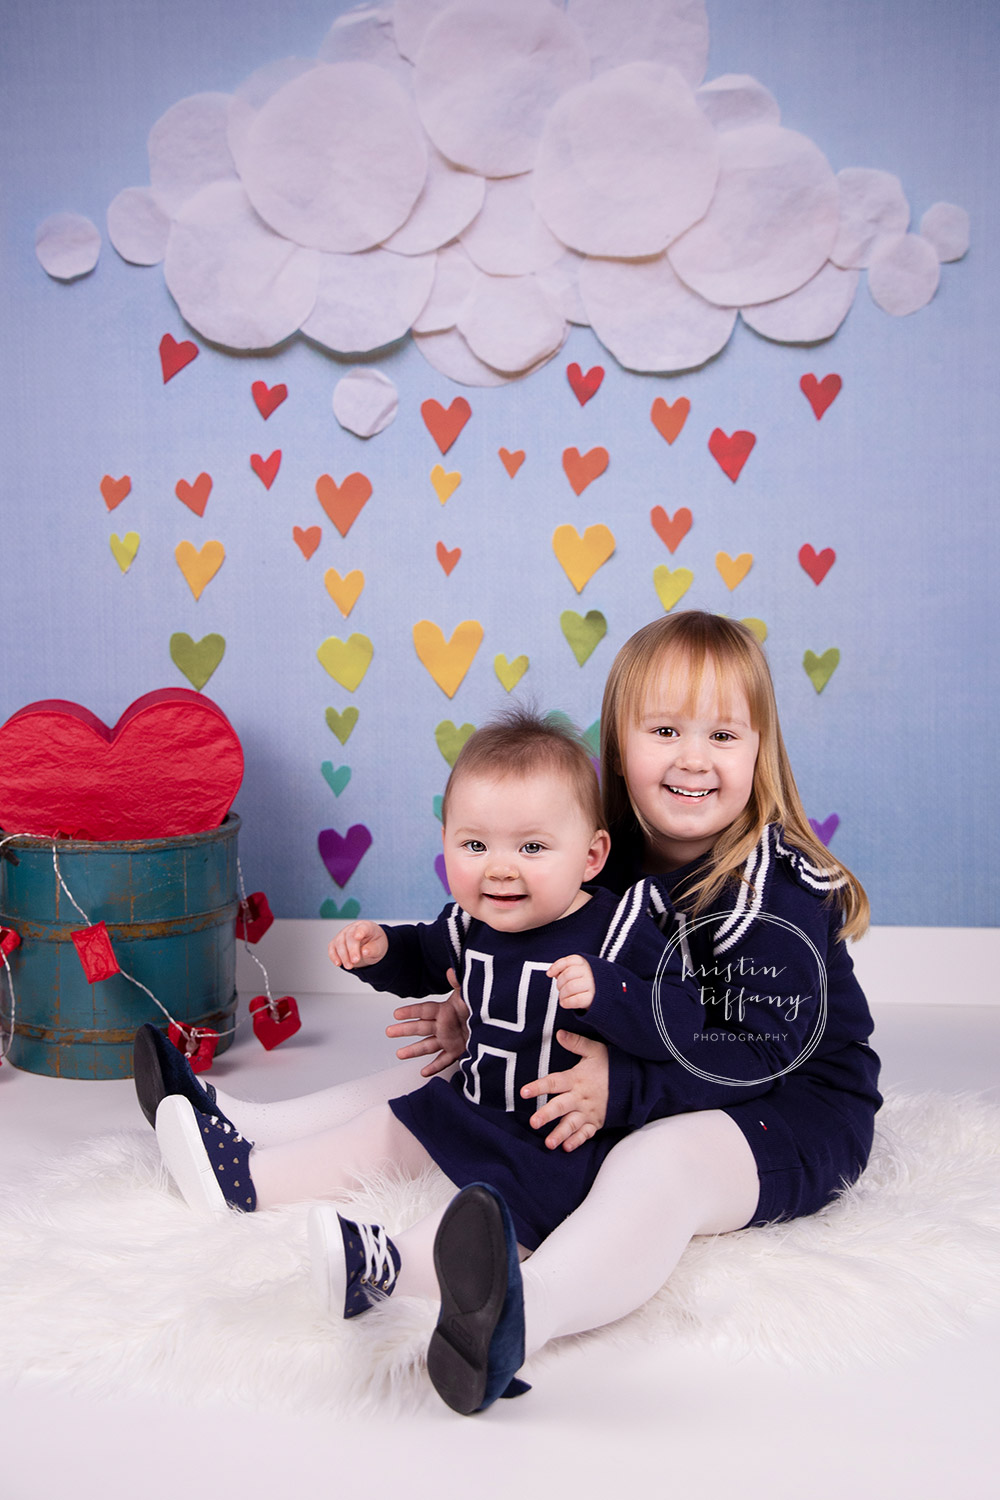 a photo of sisters at a valentines day photoshoot